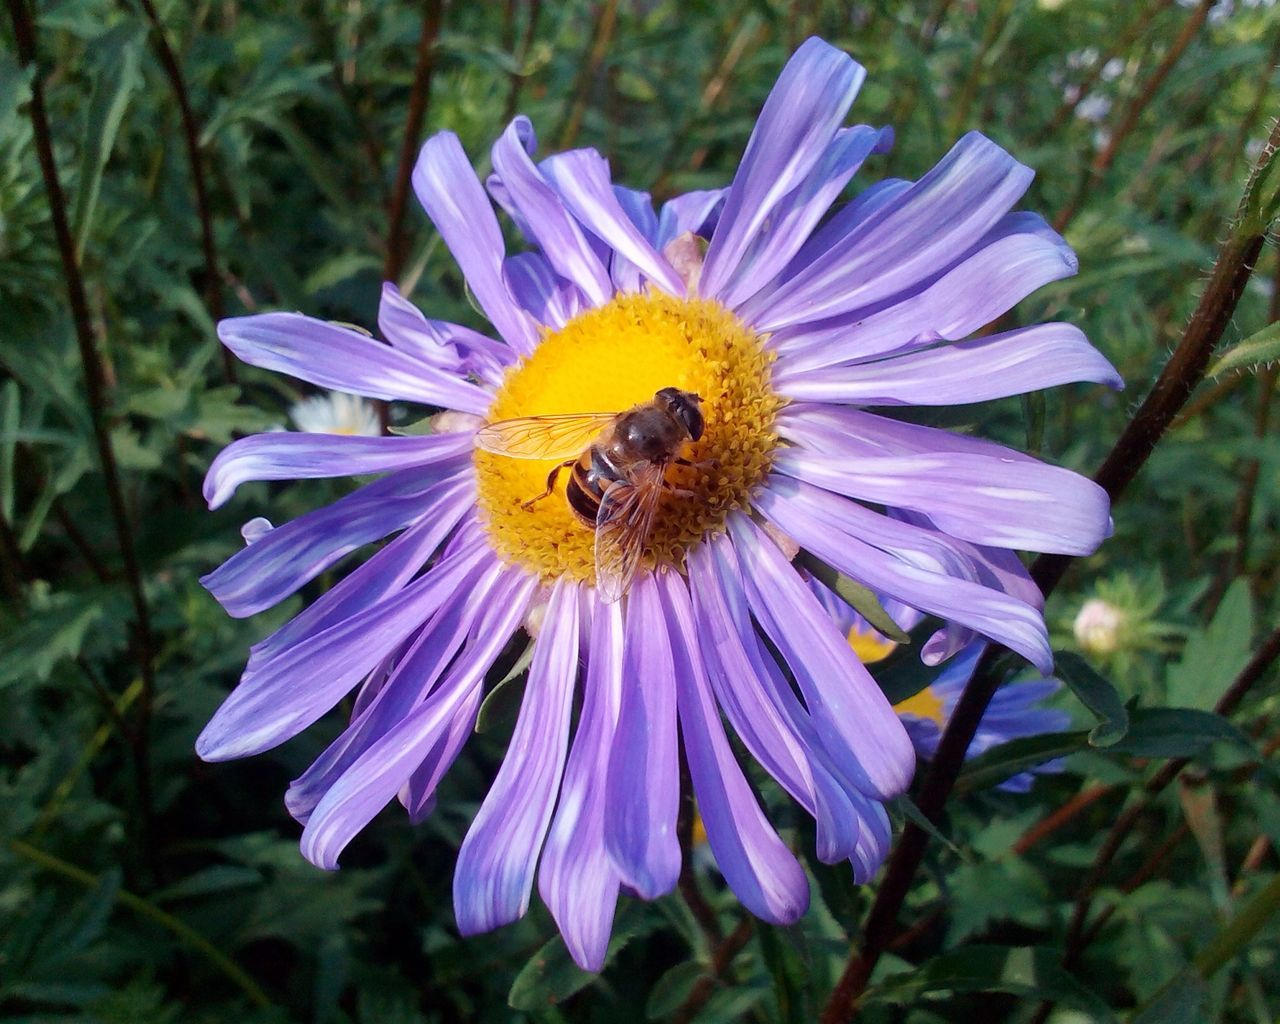 flower, petal, nature, insect, fragility, beauty in nature, plant, growth, flower head, animal themes, animals in the wild, freshness, outdoors, purple, one animal, no people, bee, focus on foreground, pollen, day, close-up, pollination, animal wildlife, blooming, bumblebee